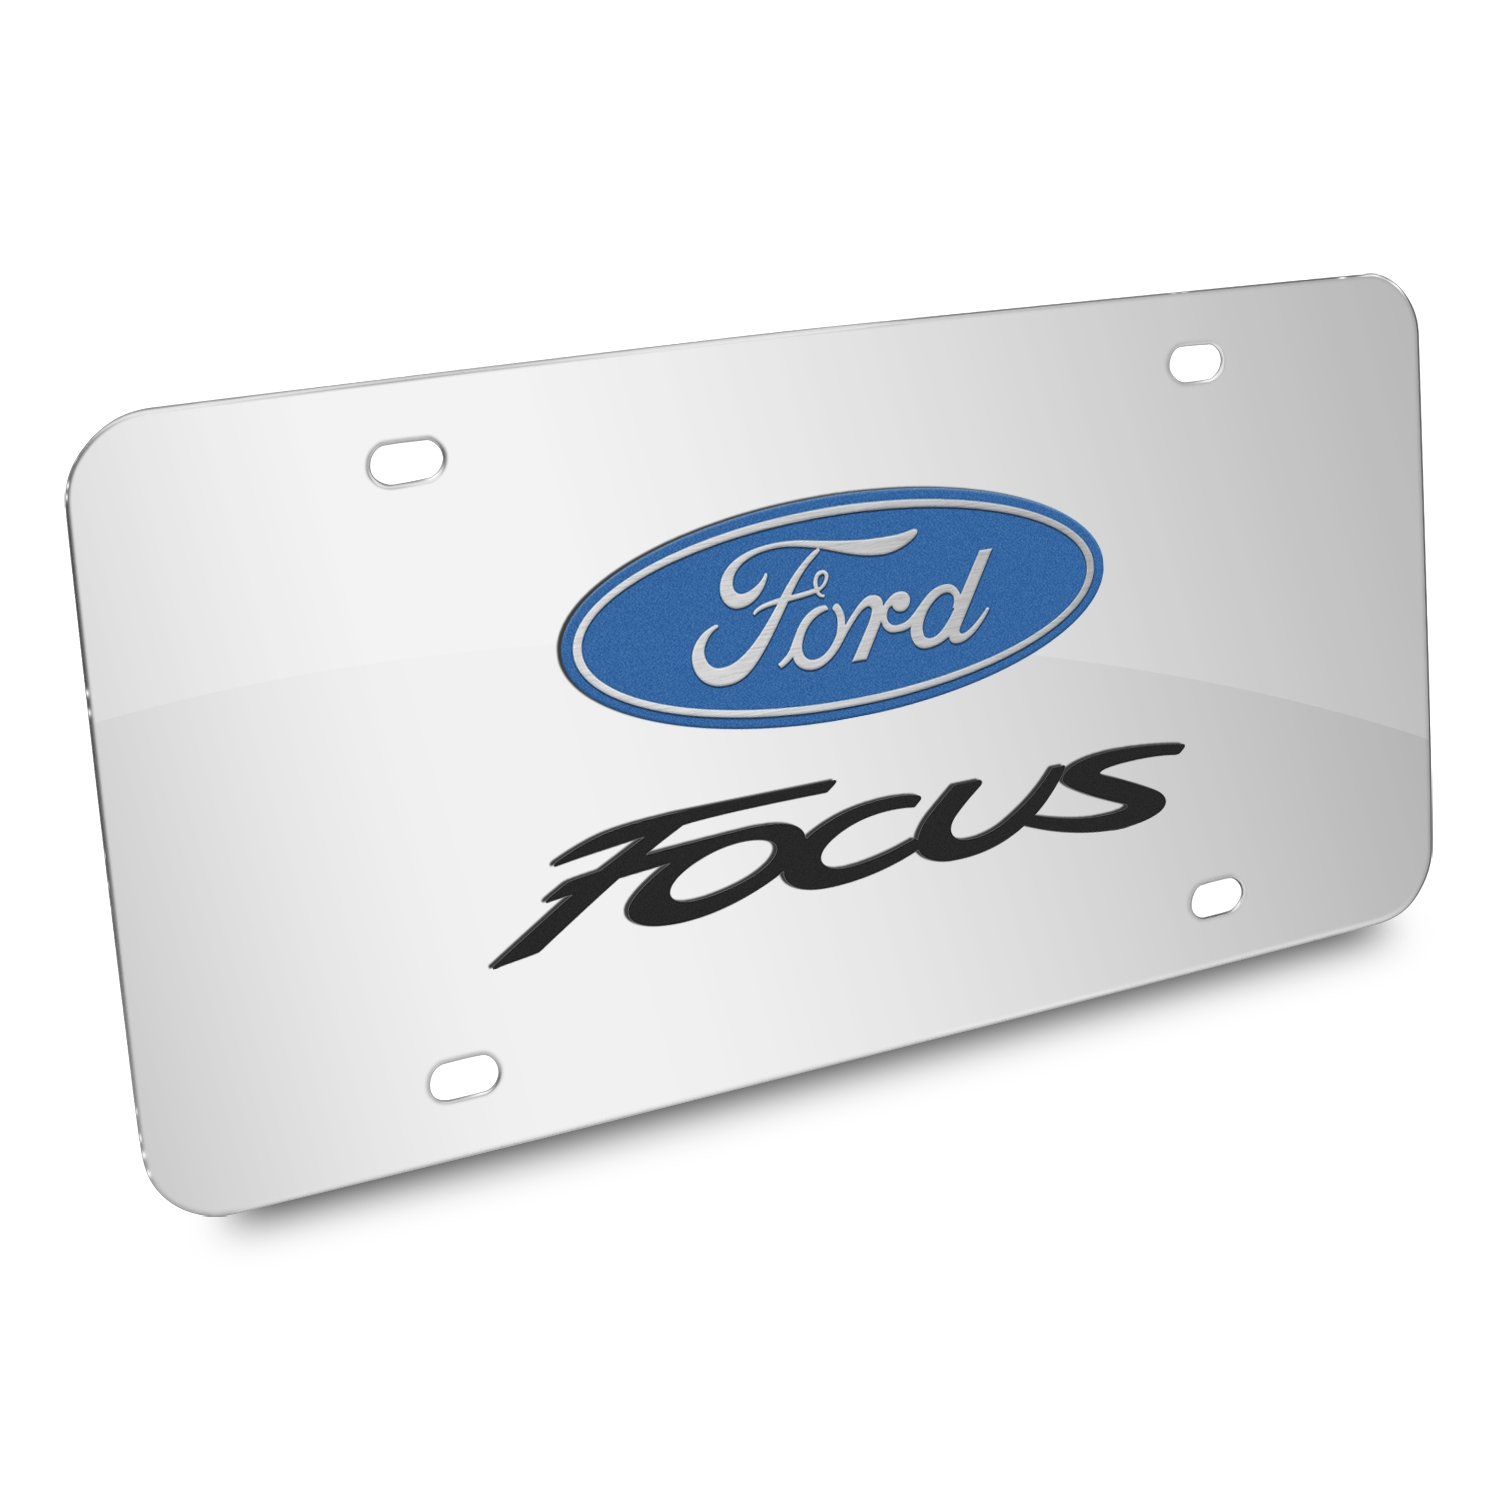 Ford Focus 3D Dual Logo Mirror Chrome Stainless Steel License Plate